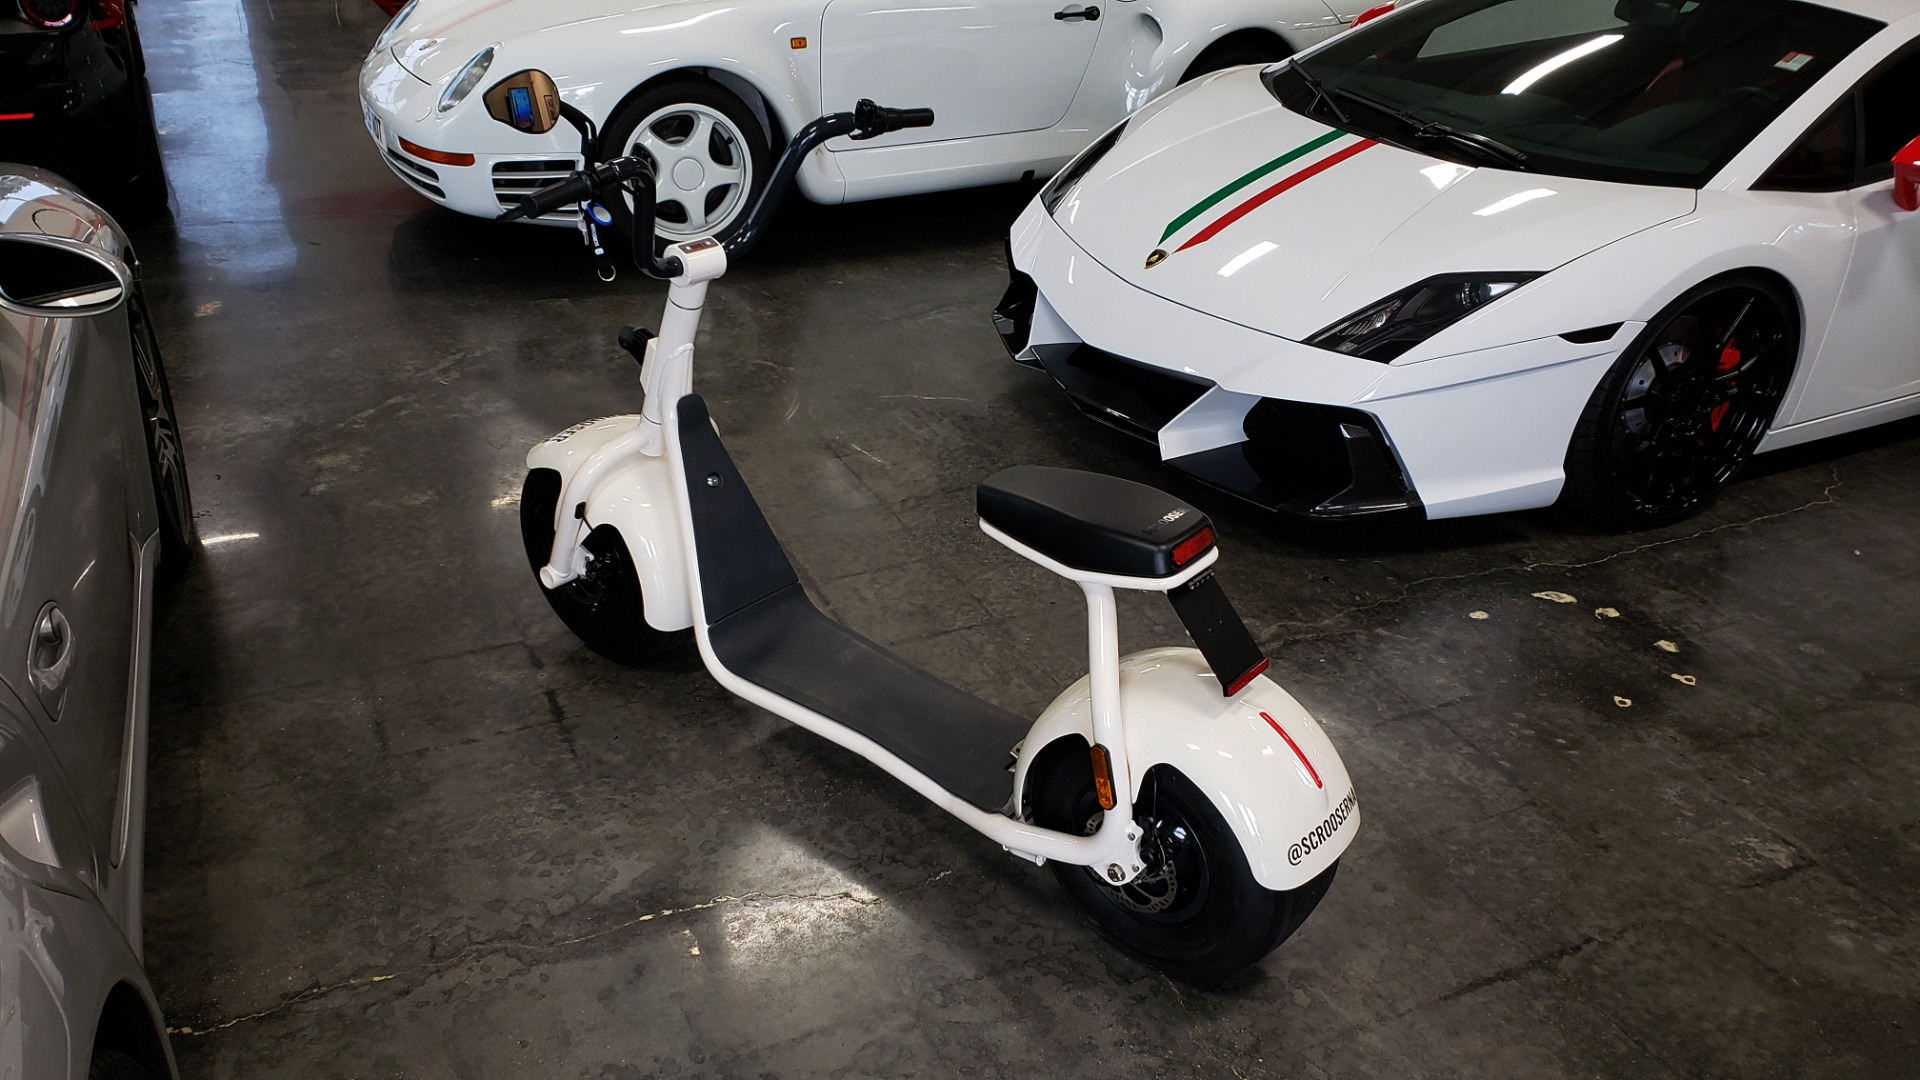 Used 2018 SCROOSER ELECTRIC SCOOTER SELF BALANCED / PRIME BLUE / 15.5 MPH / 34 MI RANGE for sale Sold at Formula Imports in Charlotte NC 28227 5